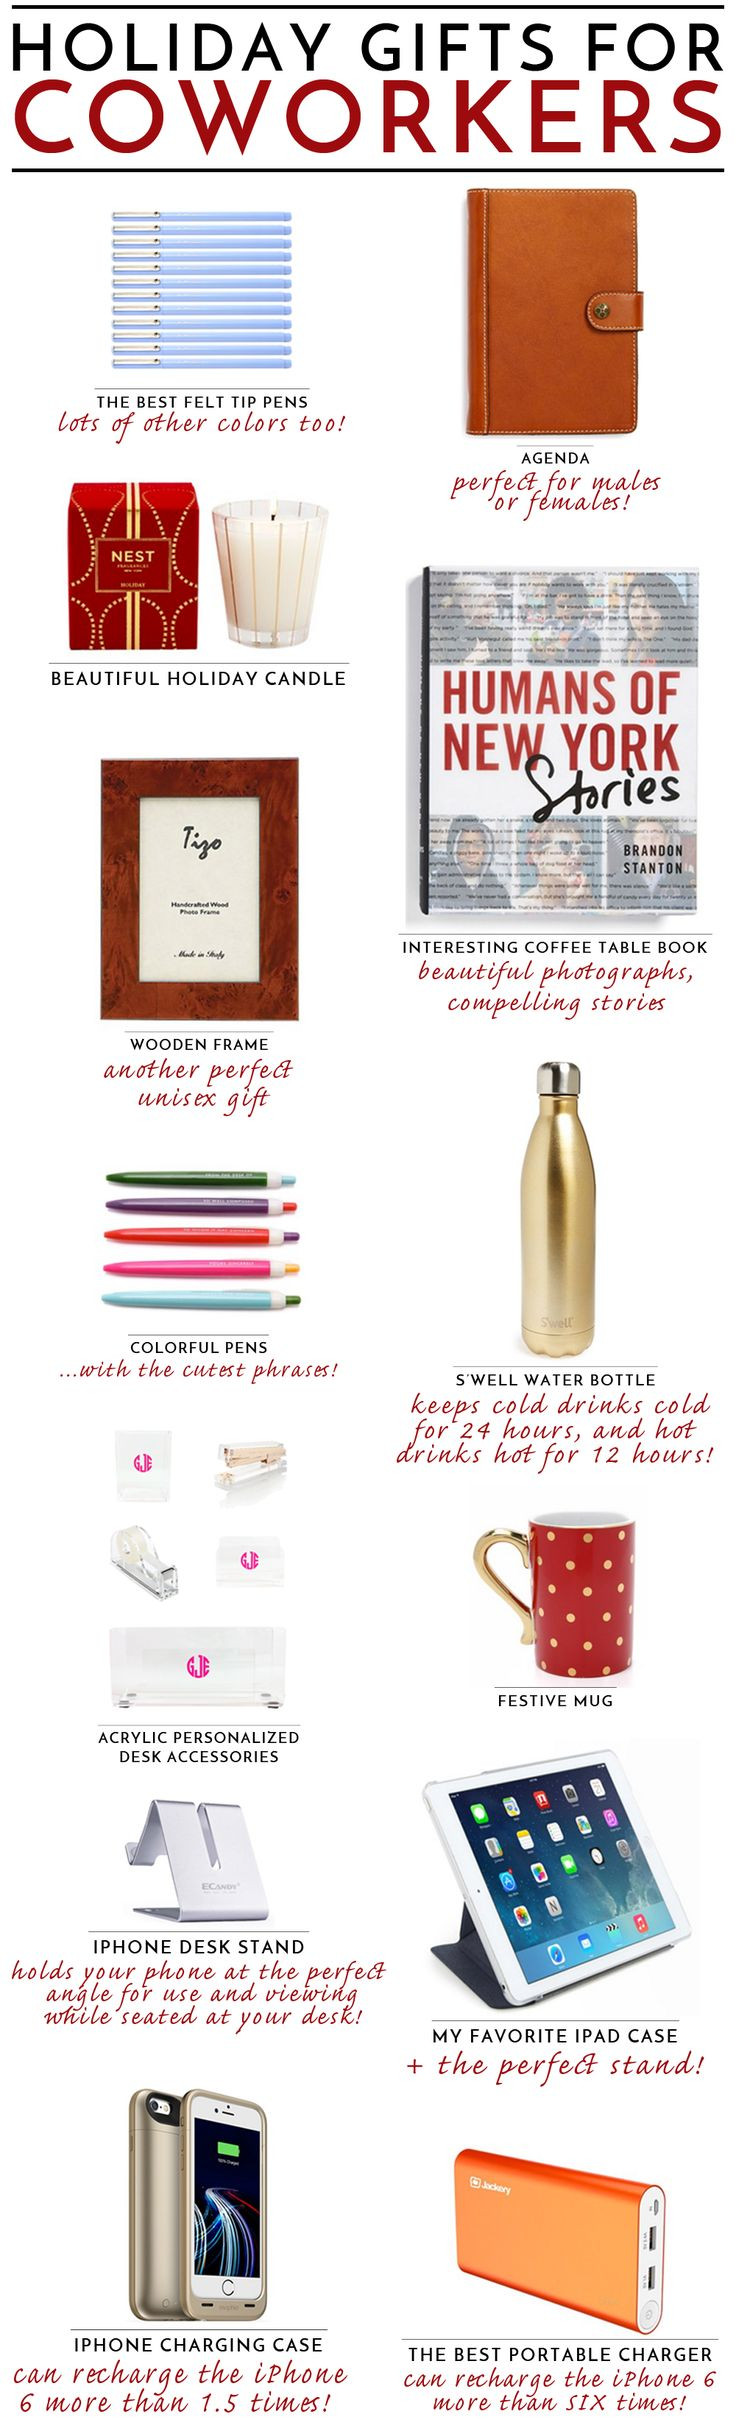 Best ideas about Gift Ideas For Colleagues . Save or Pin Best 20 Gifts For Coworkers ideas on Pinterest Now.